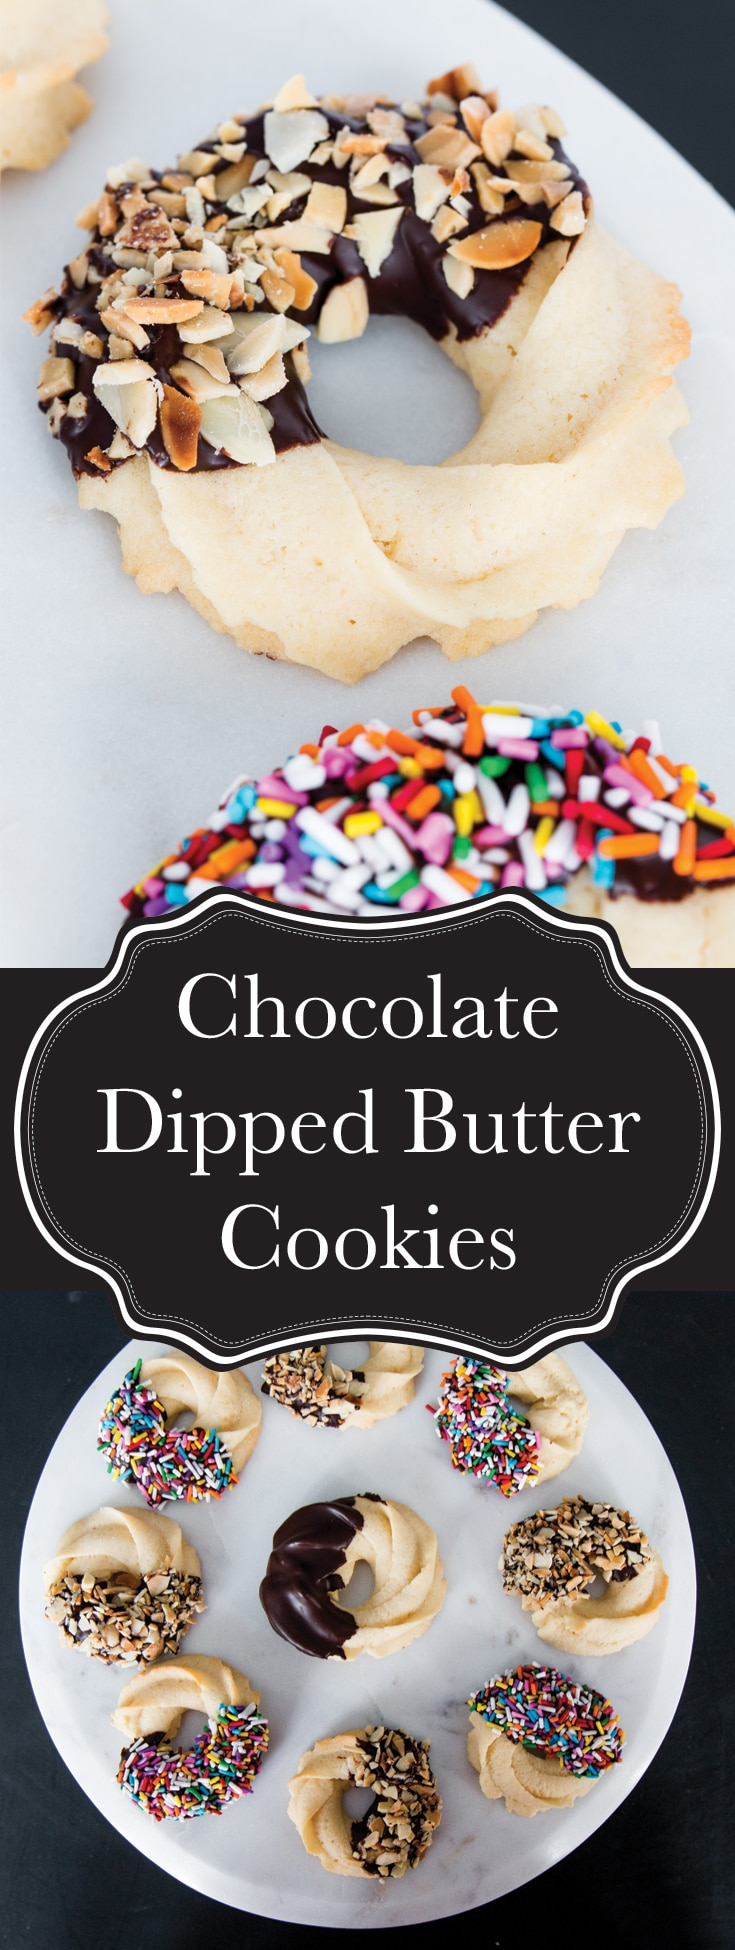 Crisp and delicate butter cookies dipped in dark chocolate and covered with toasted almonds (or sprinkles)